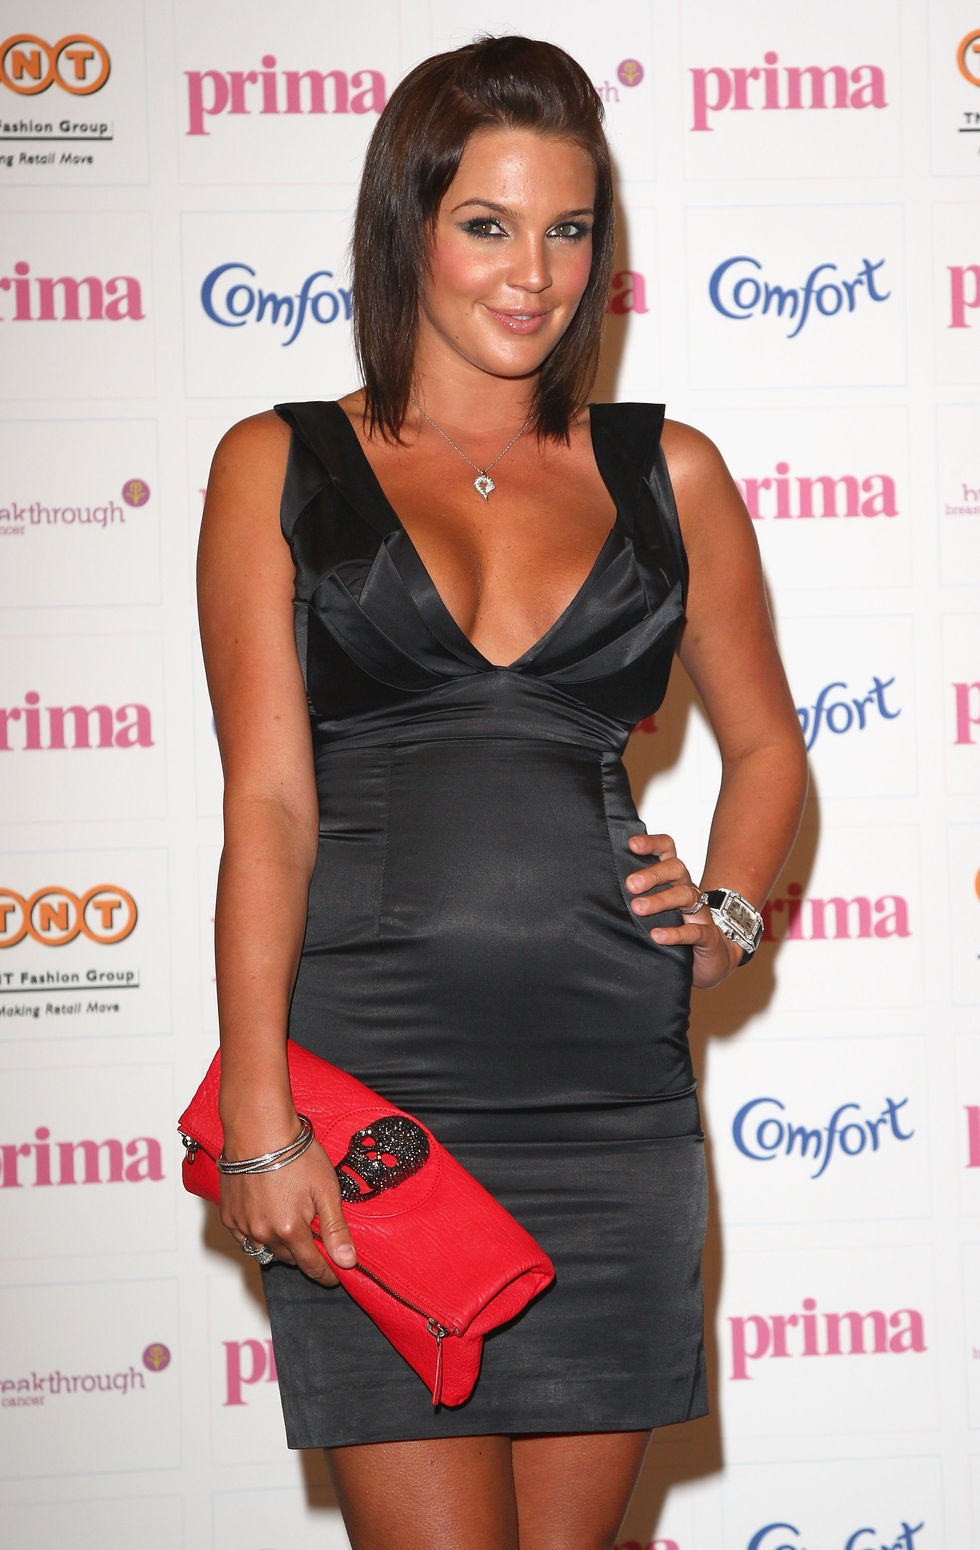 danielle-lloyd-2008-comfort-prima-high-street-fashion-awards-in-london-01